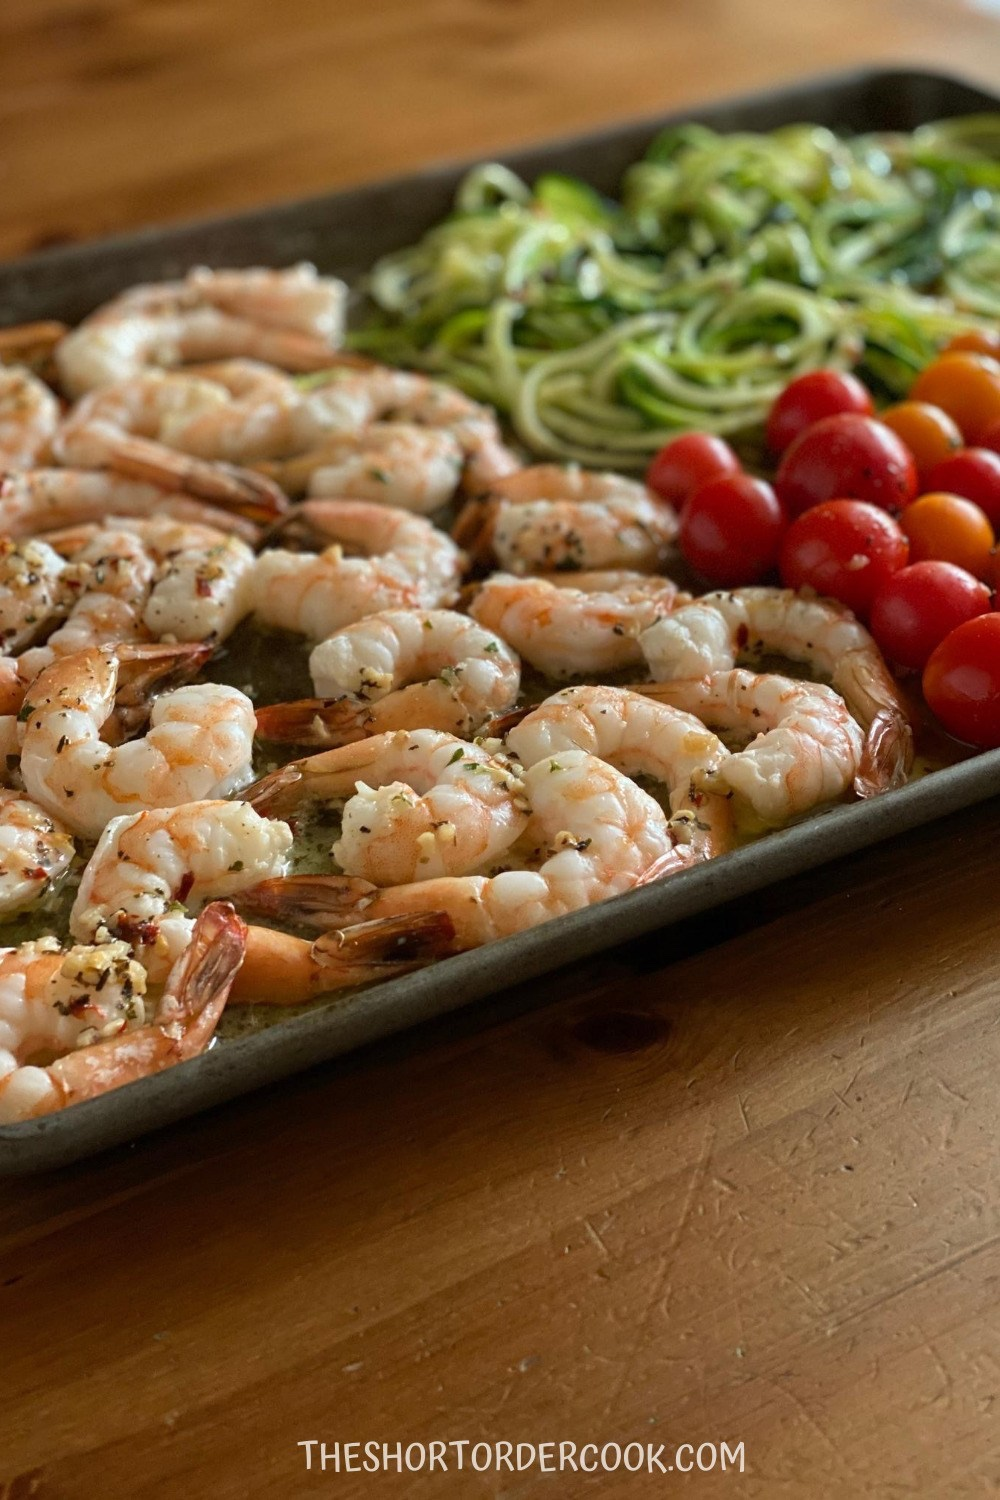 It's dinner time, you've had a long day and want to eat something quick. If pizza isn't sounding great, check out these quick Sheet Pan Dinner Ideas. #dinner #recipe #recipes #manthatlooksgood #sheetpandinner #sheetpanmeal #easyrecipes #quickrecipes